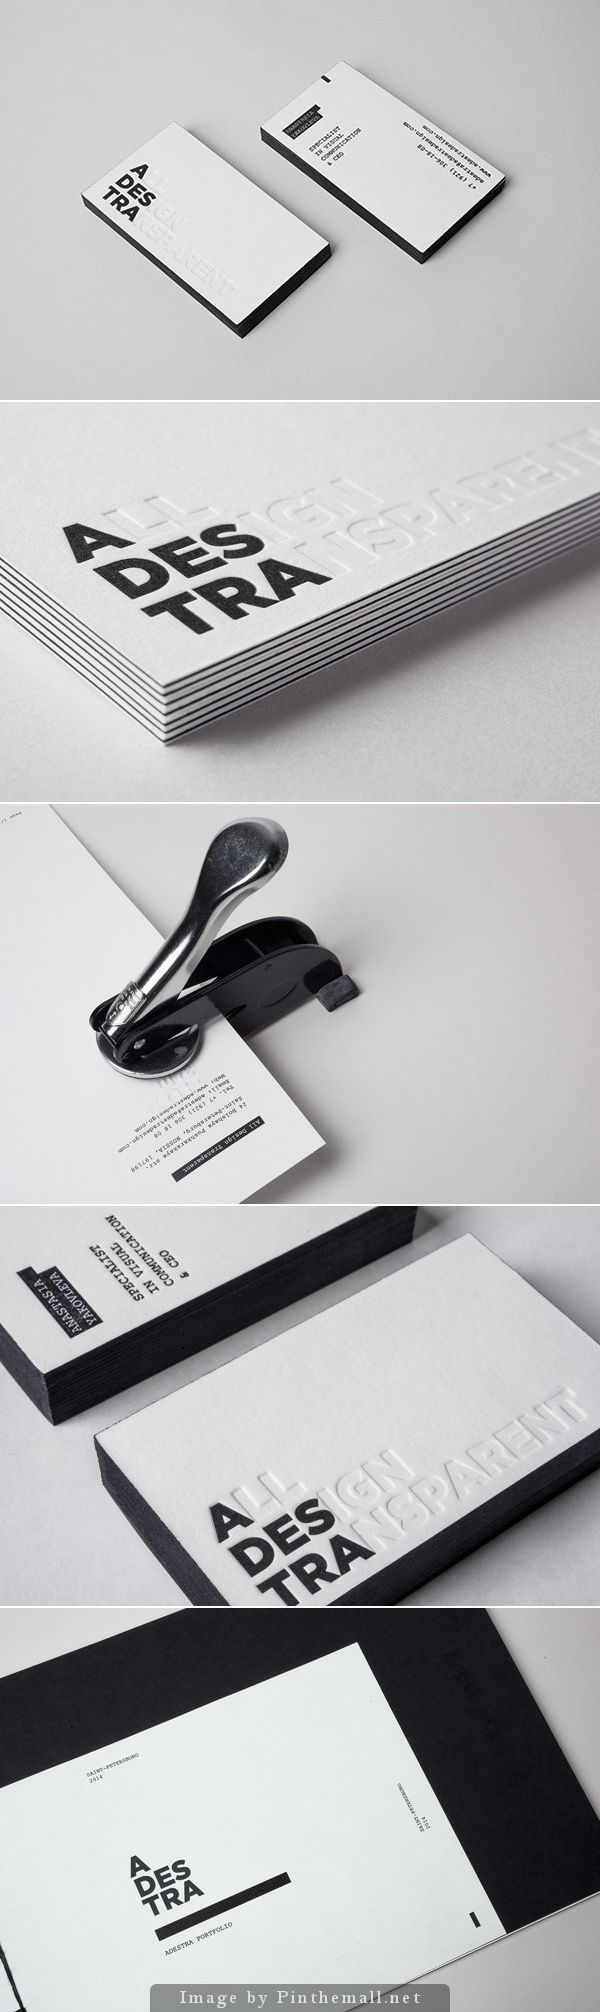 Designing With Black and White 50 Striking Examples For